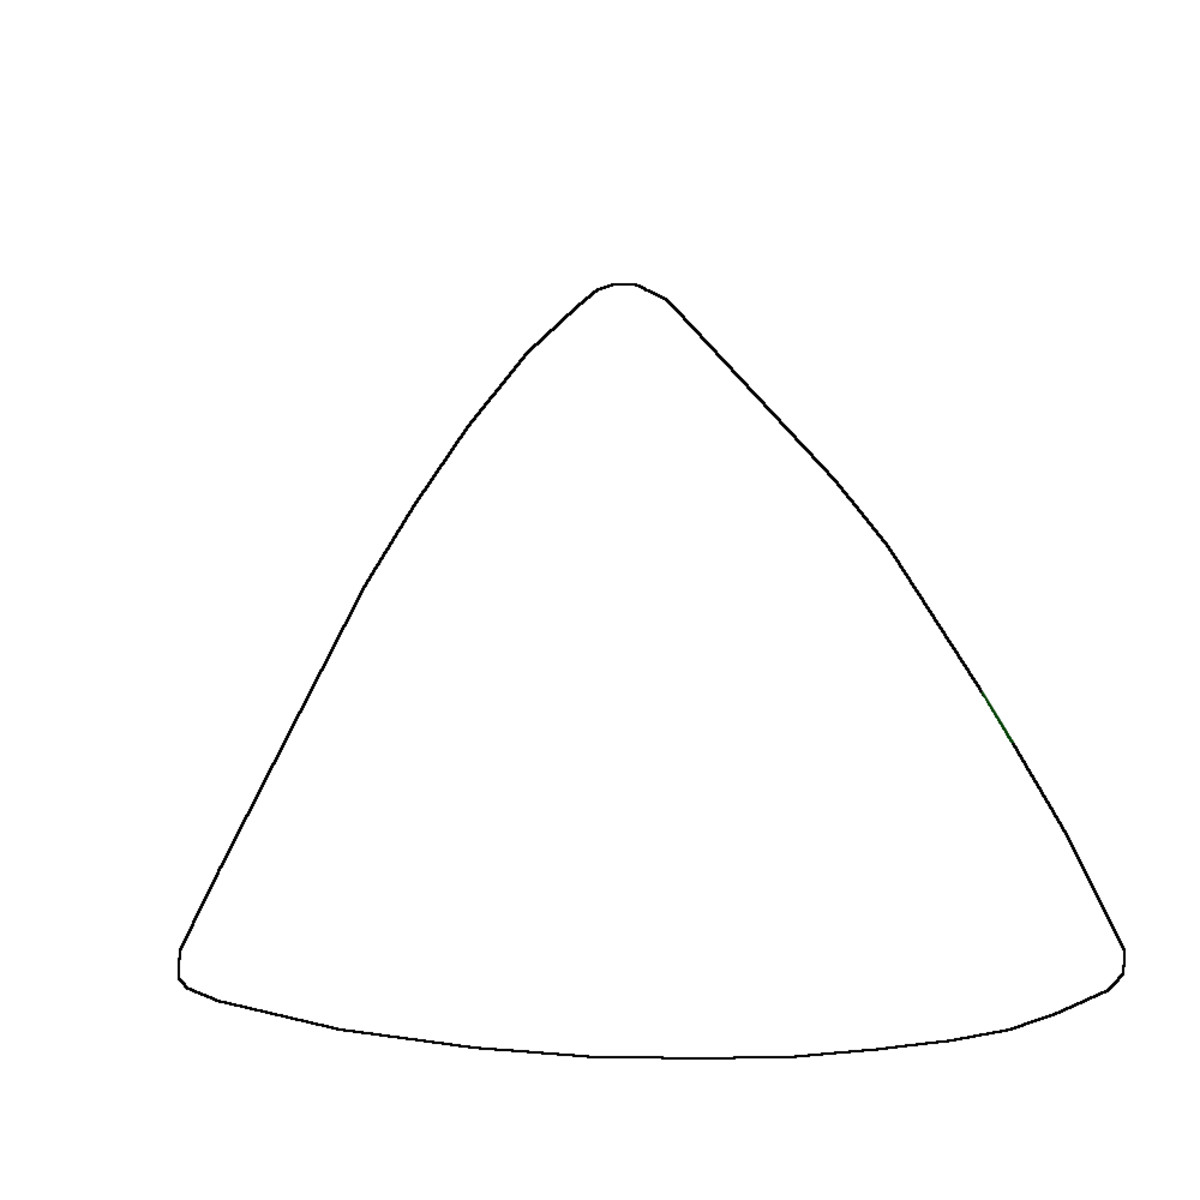 The body shape with lines removed will help you by not confusing your eyes when trying to draw the rest of the shapes.